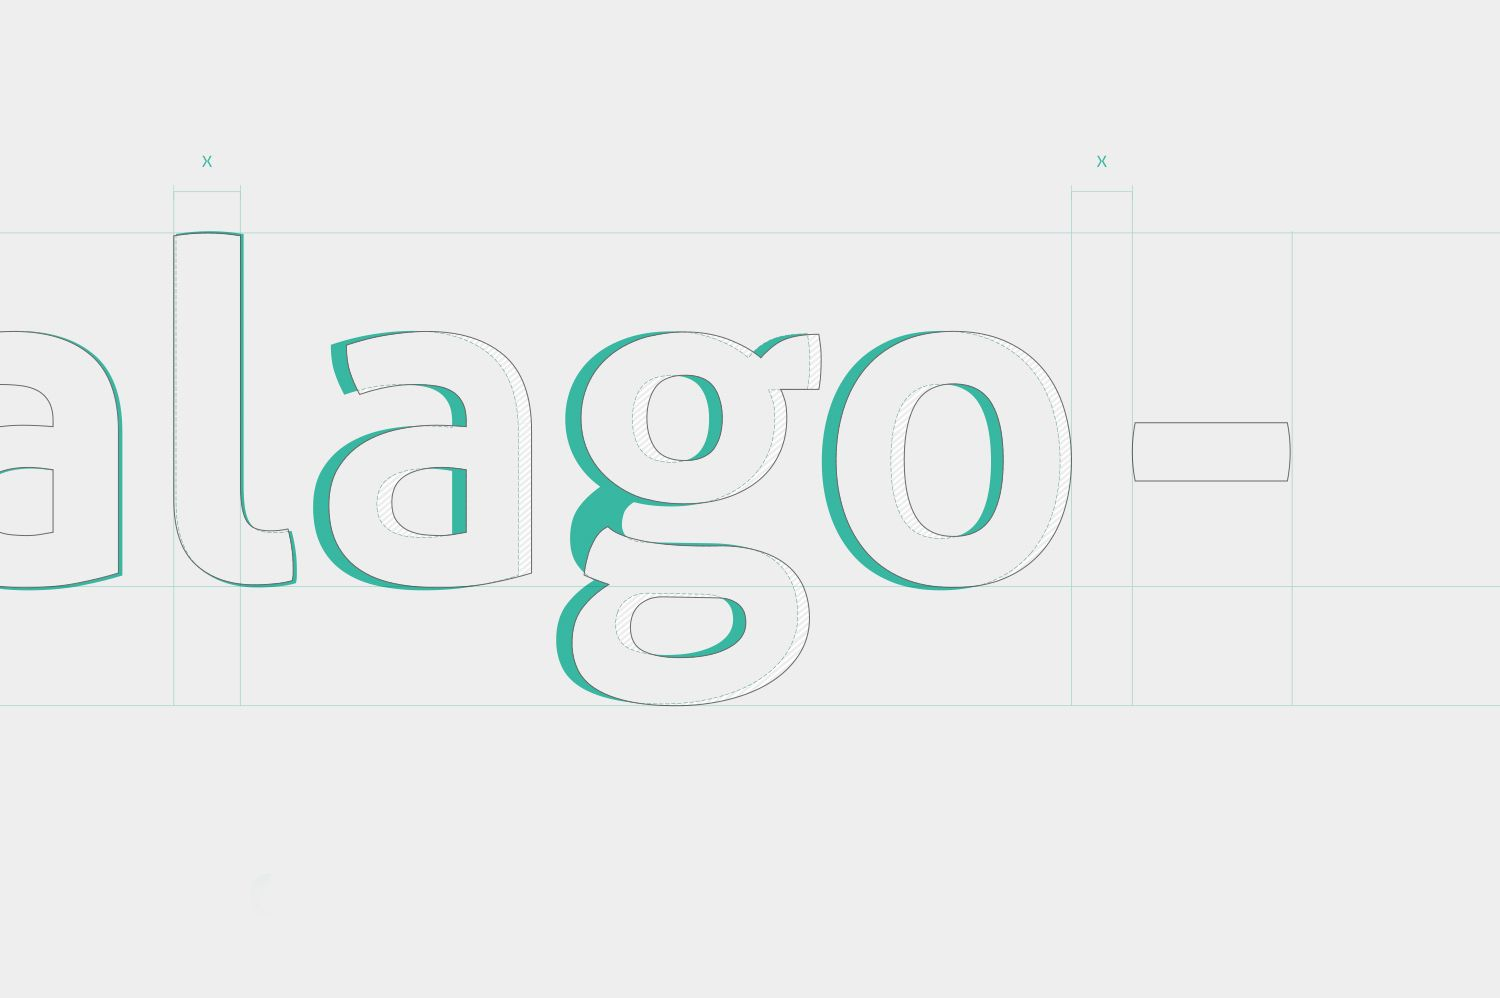 Haralago Wordmark Construction